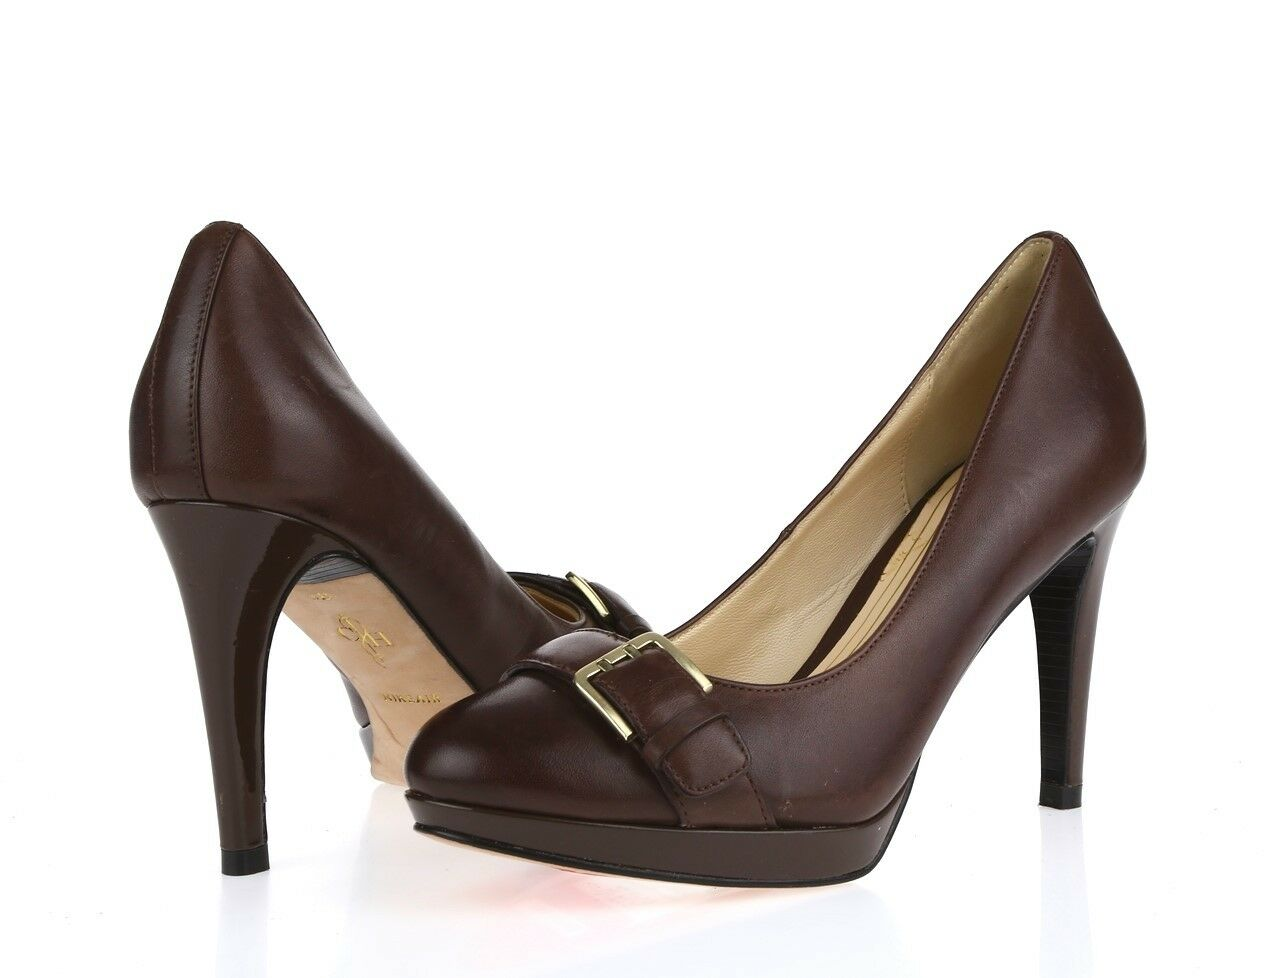 Donna COLE HAAN 210035 brown leather pumps heels sz. 6 B